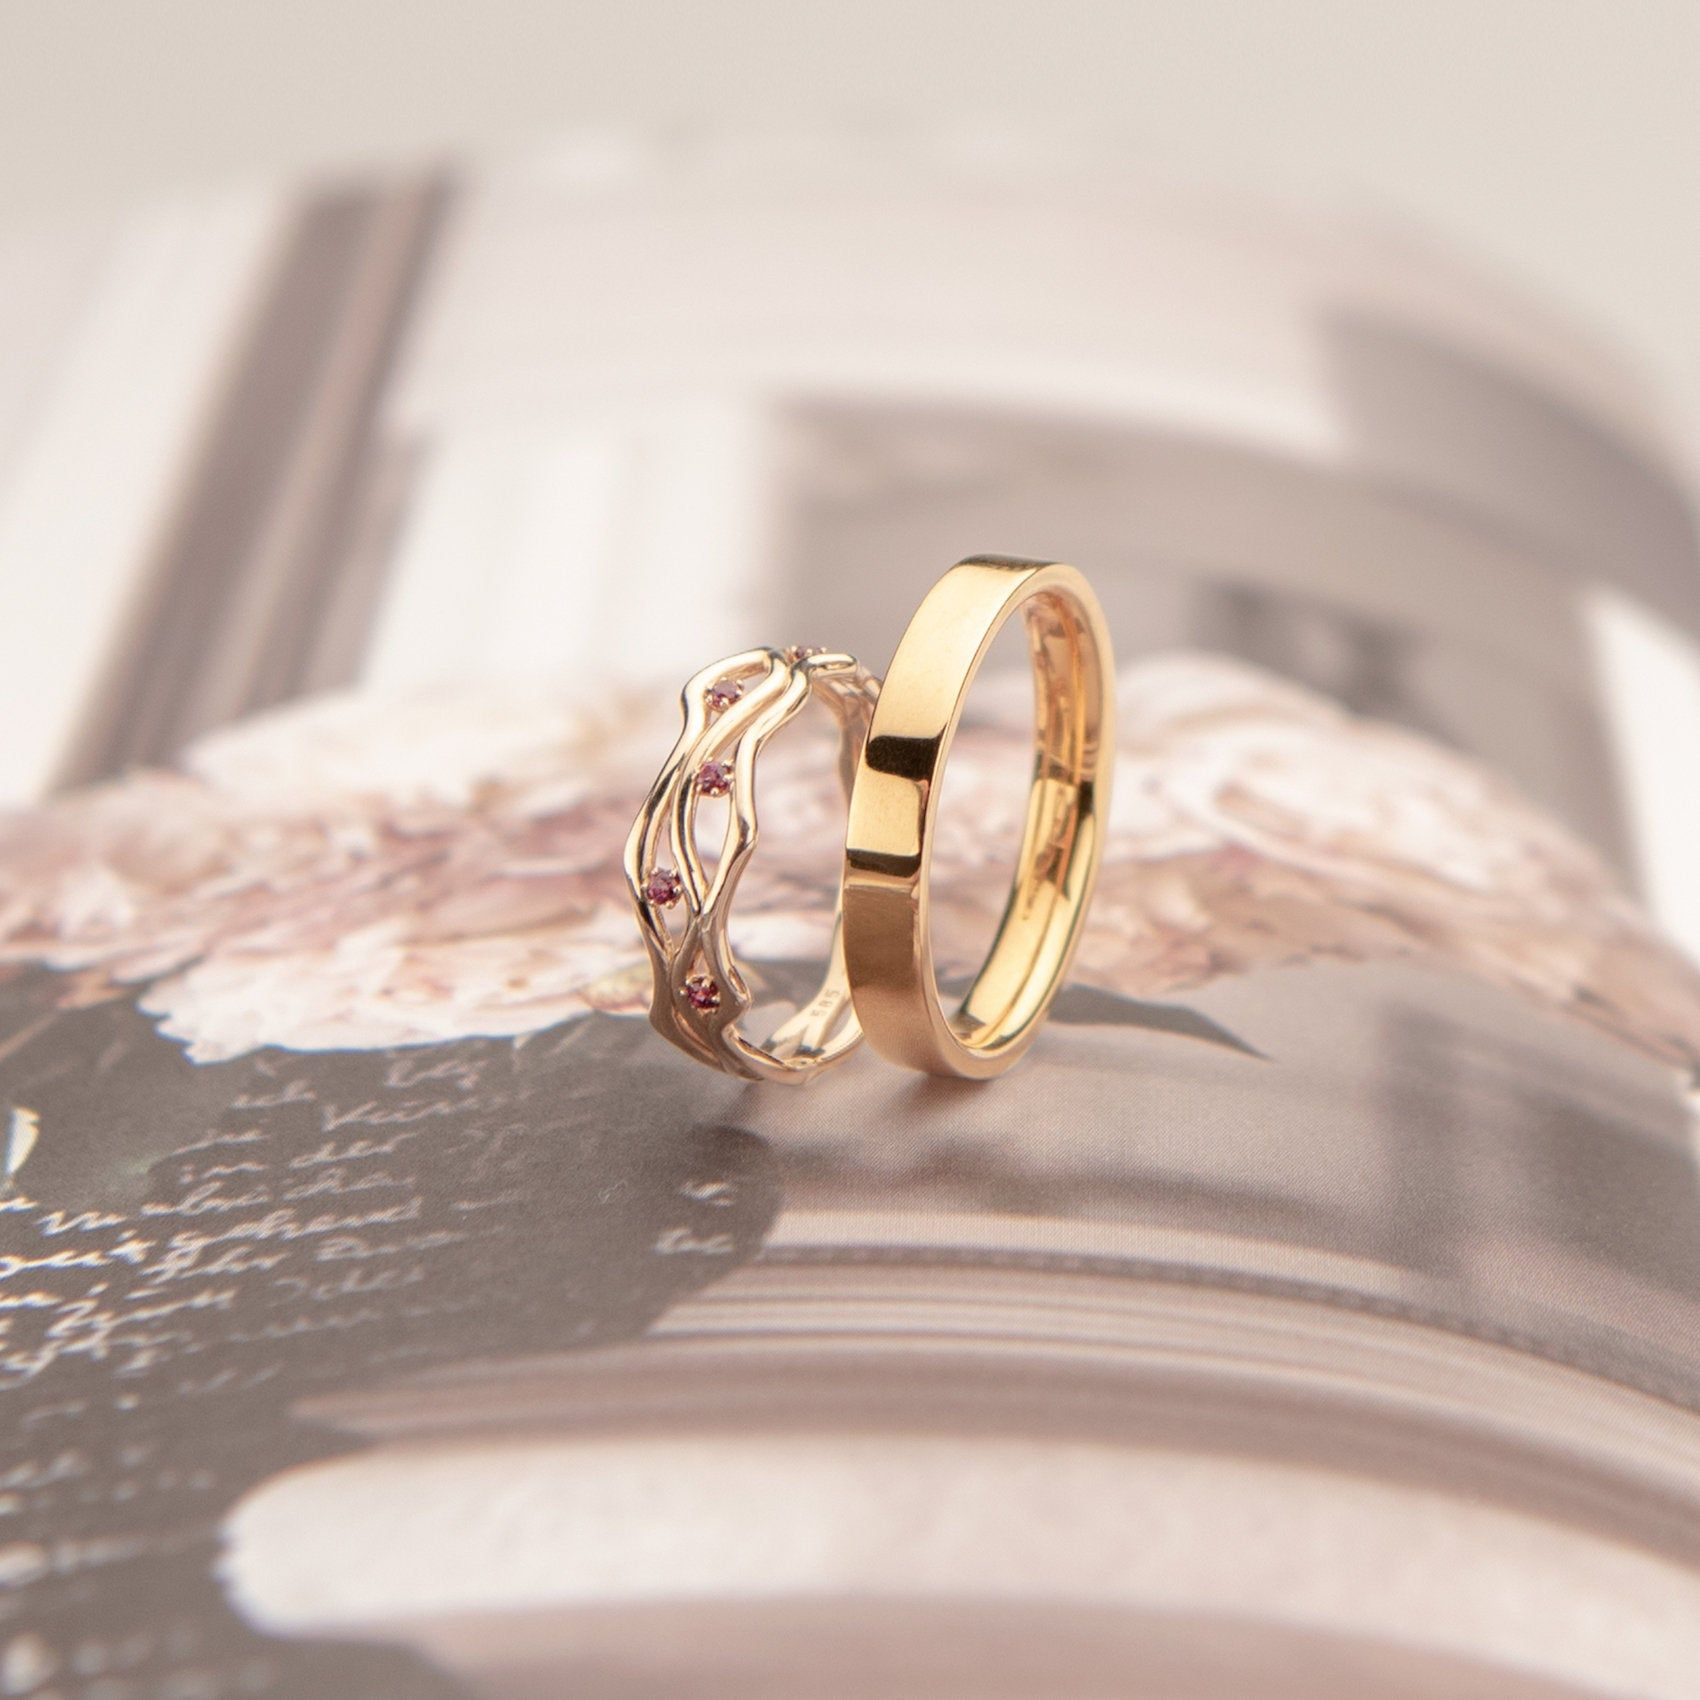 Wedding Rings In 14k Yellow Gold Boho Wedding Rings For Her And For Him Unique Wedding Bands Set Designs Boheme And New York In 2021 Boho Wedding Ring Unique Wedding Band